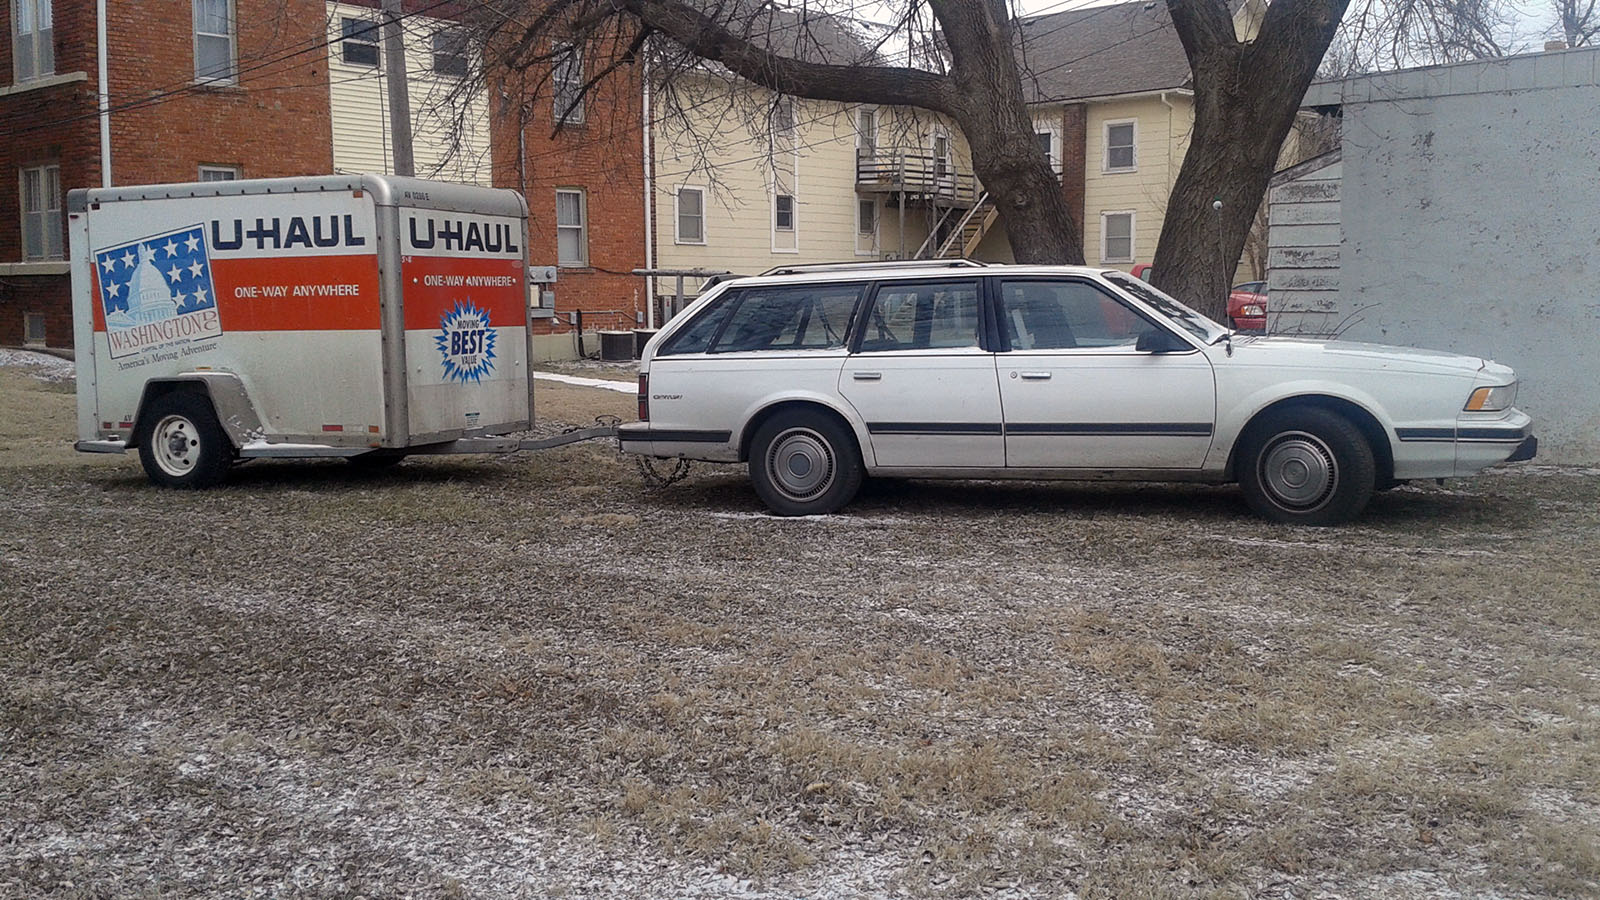 1996 Buick Century Wagon With A Lx9 V6 Engine Swap Depot 03 Transmission Wiring Disaster Struck When The Was Starved Of Oil Going Around Turn And Resulted In Spun Bearing Daniel Decided It Would Be More Cost Effective To